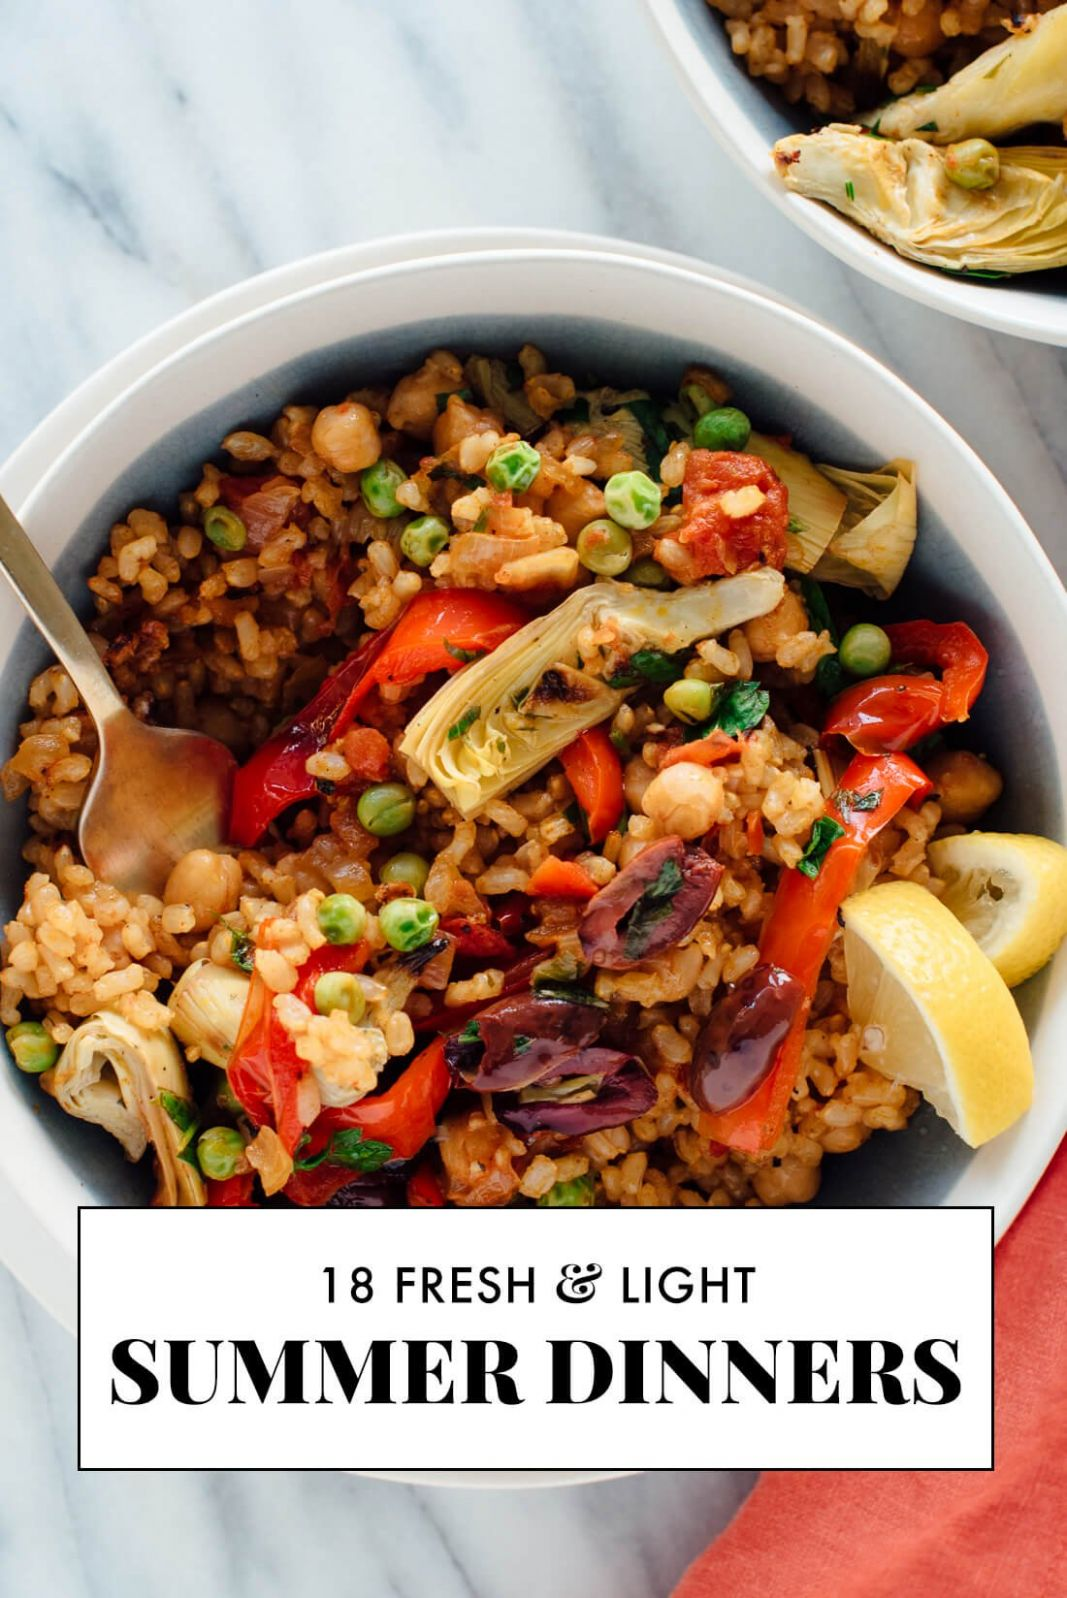 8 Light Summer Dinner Recipes - Cookie and Kate - Recipes For Quick Summer Meals